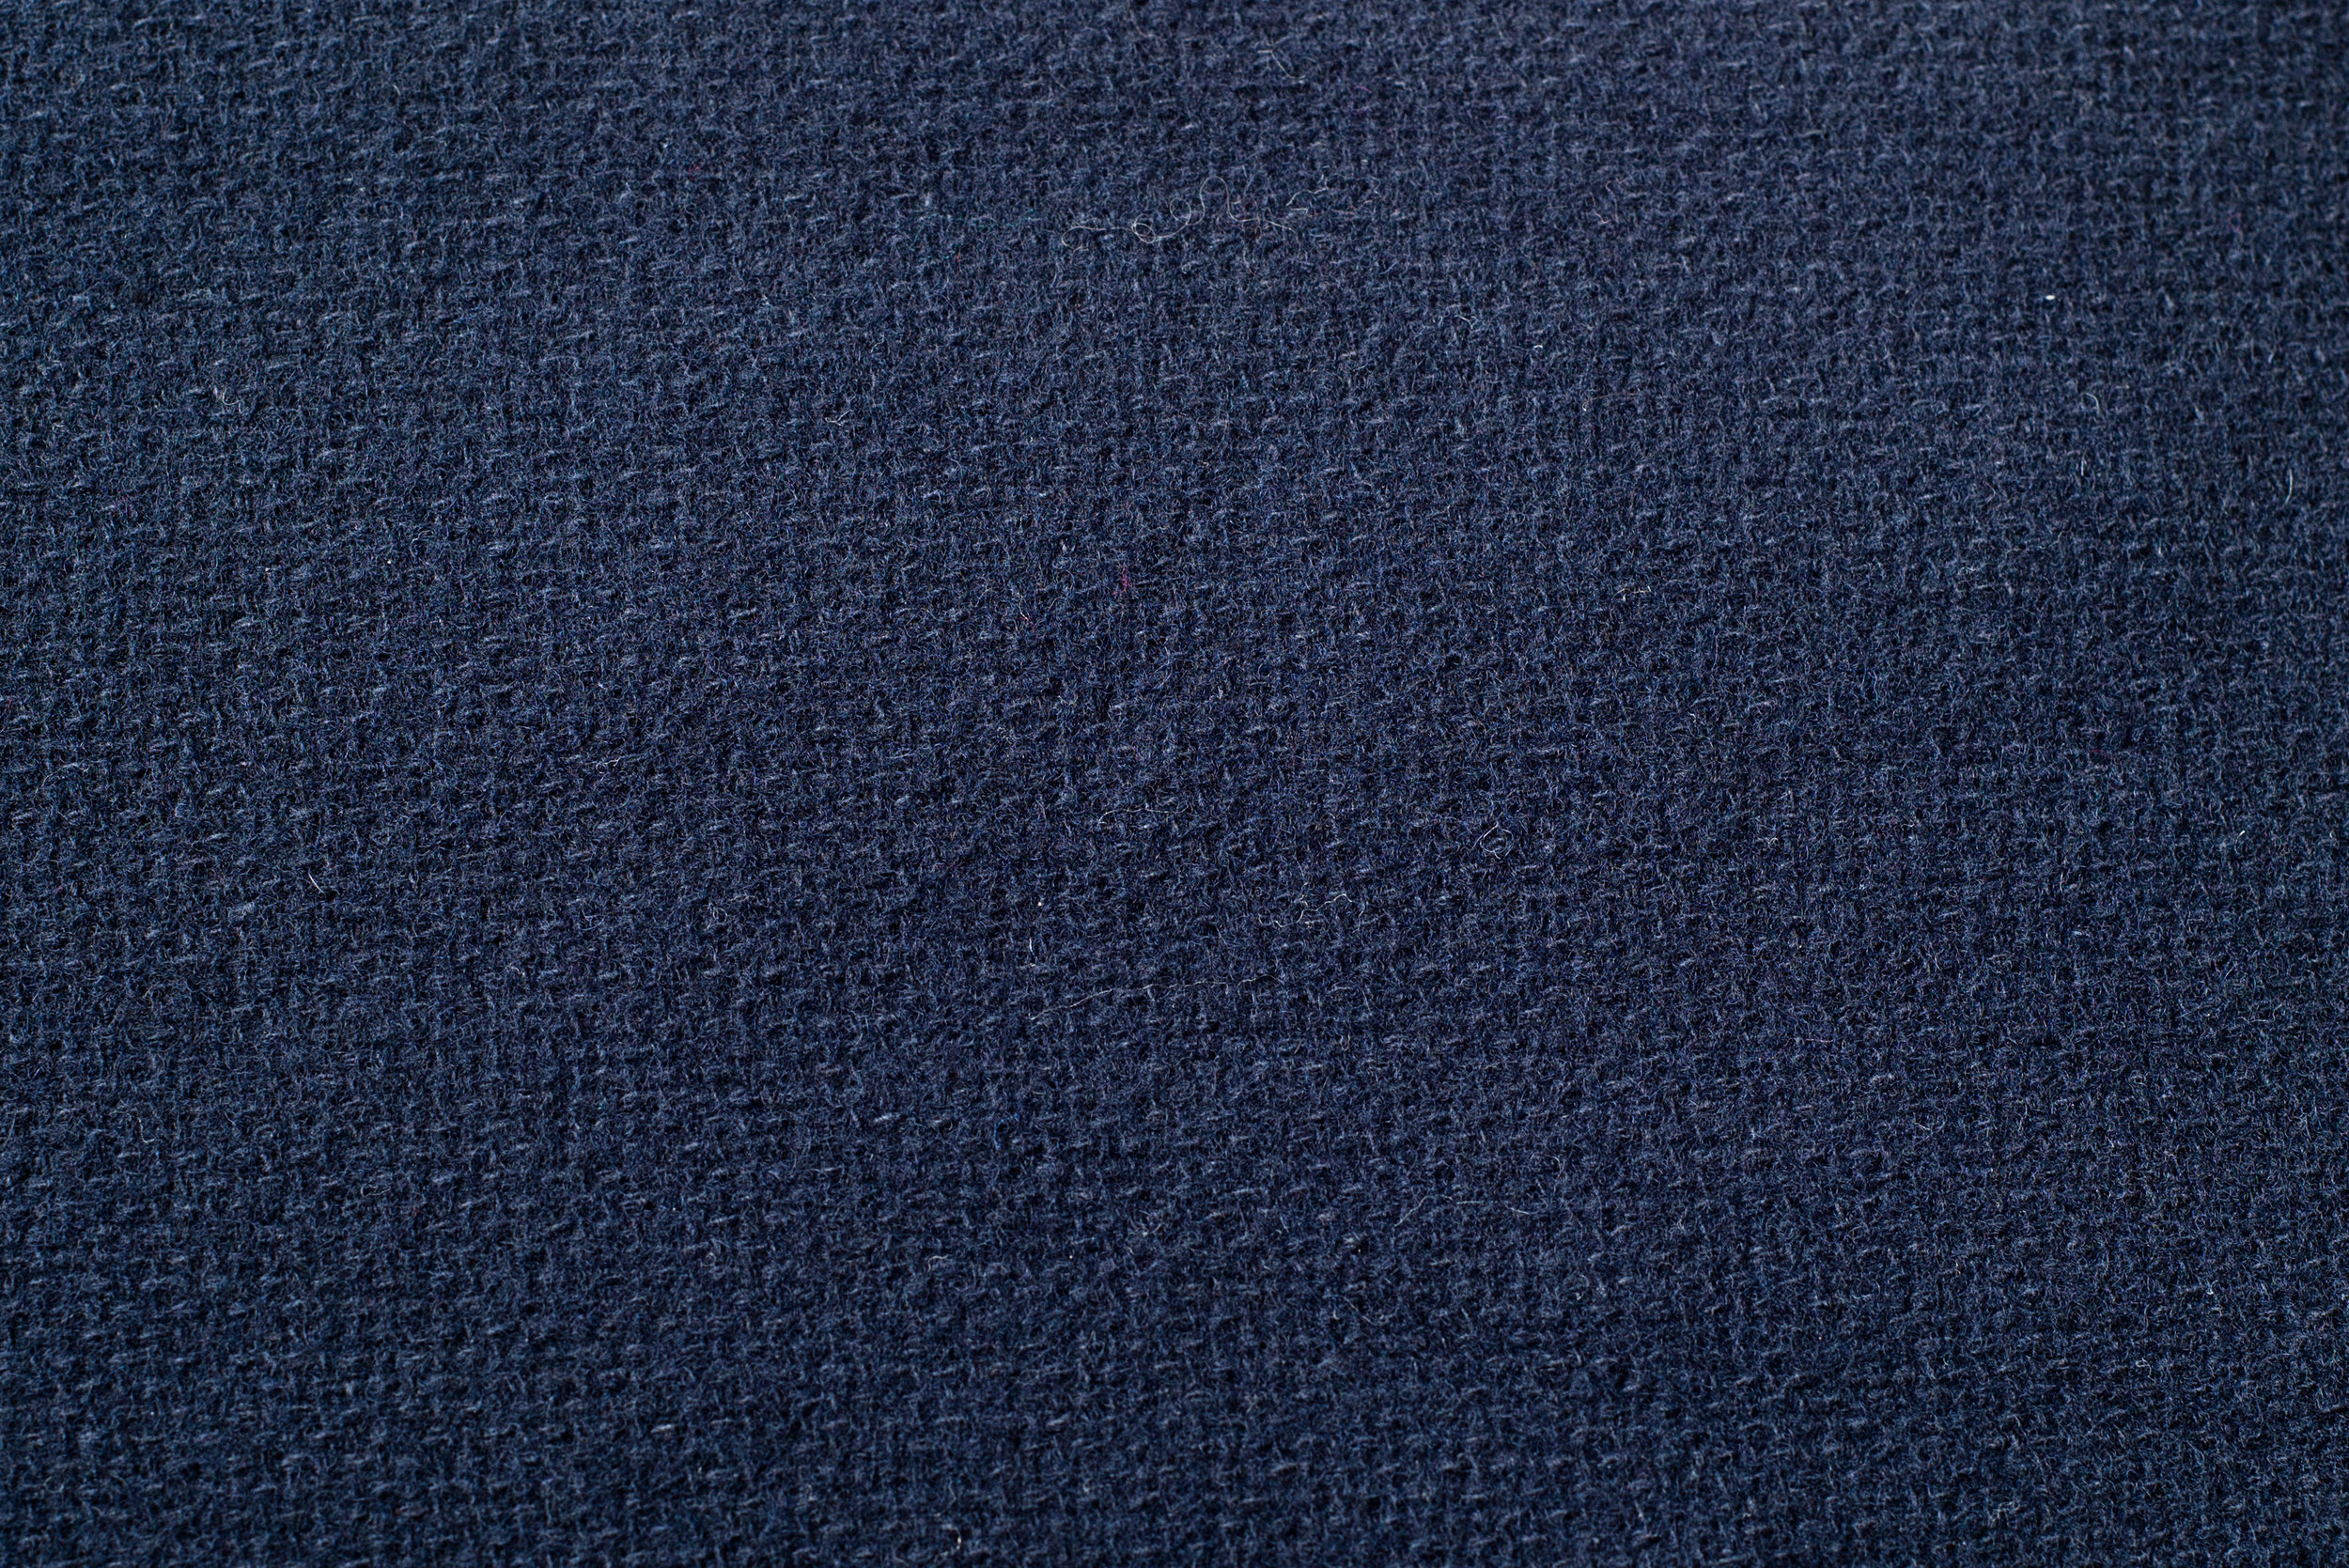 navy wool fabric for a custom suit